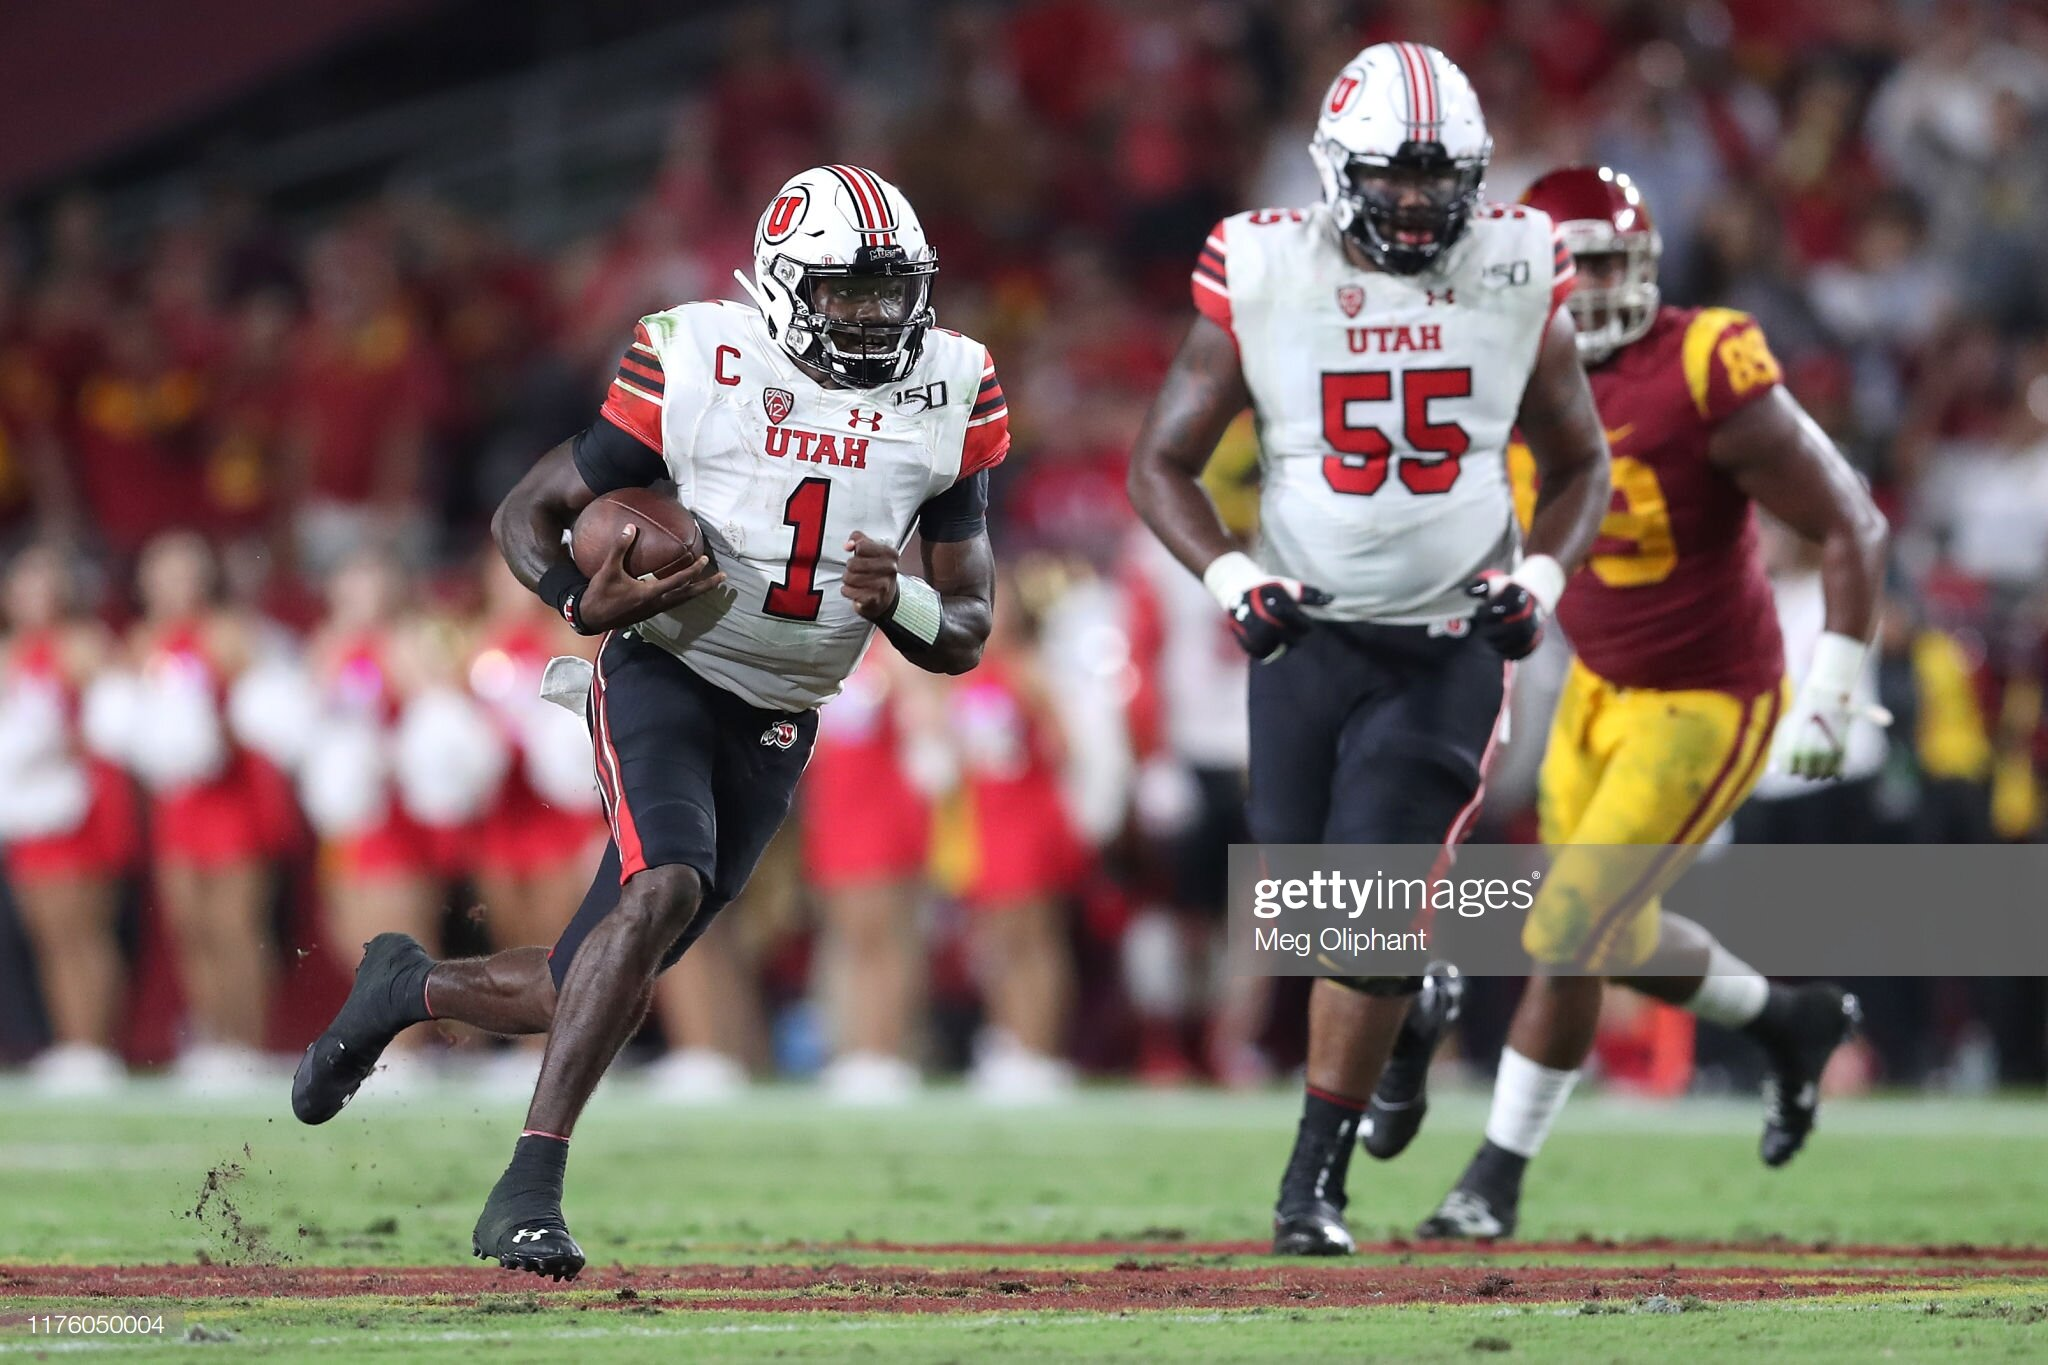 Utah quarterback Tyler Huntley evading pressure.